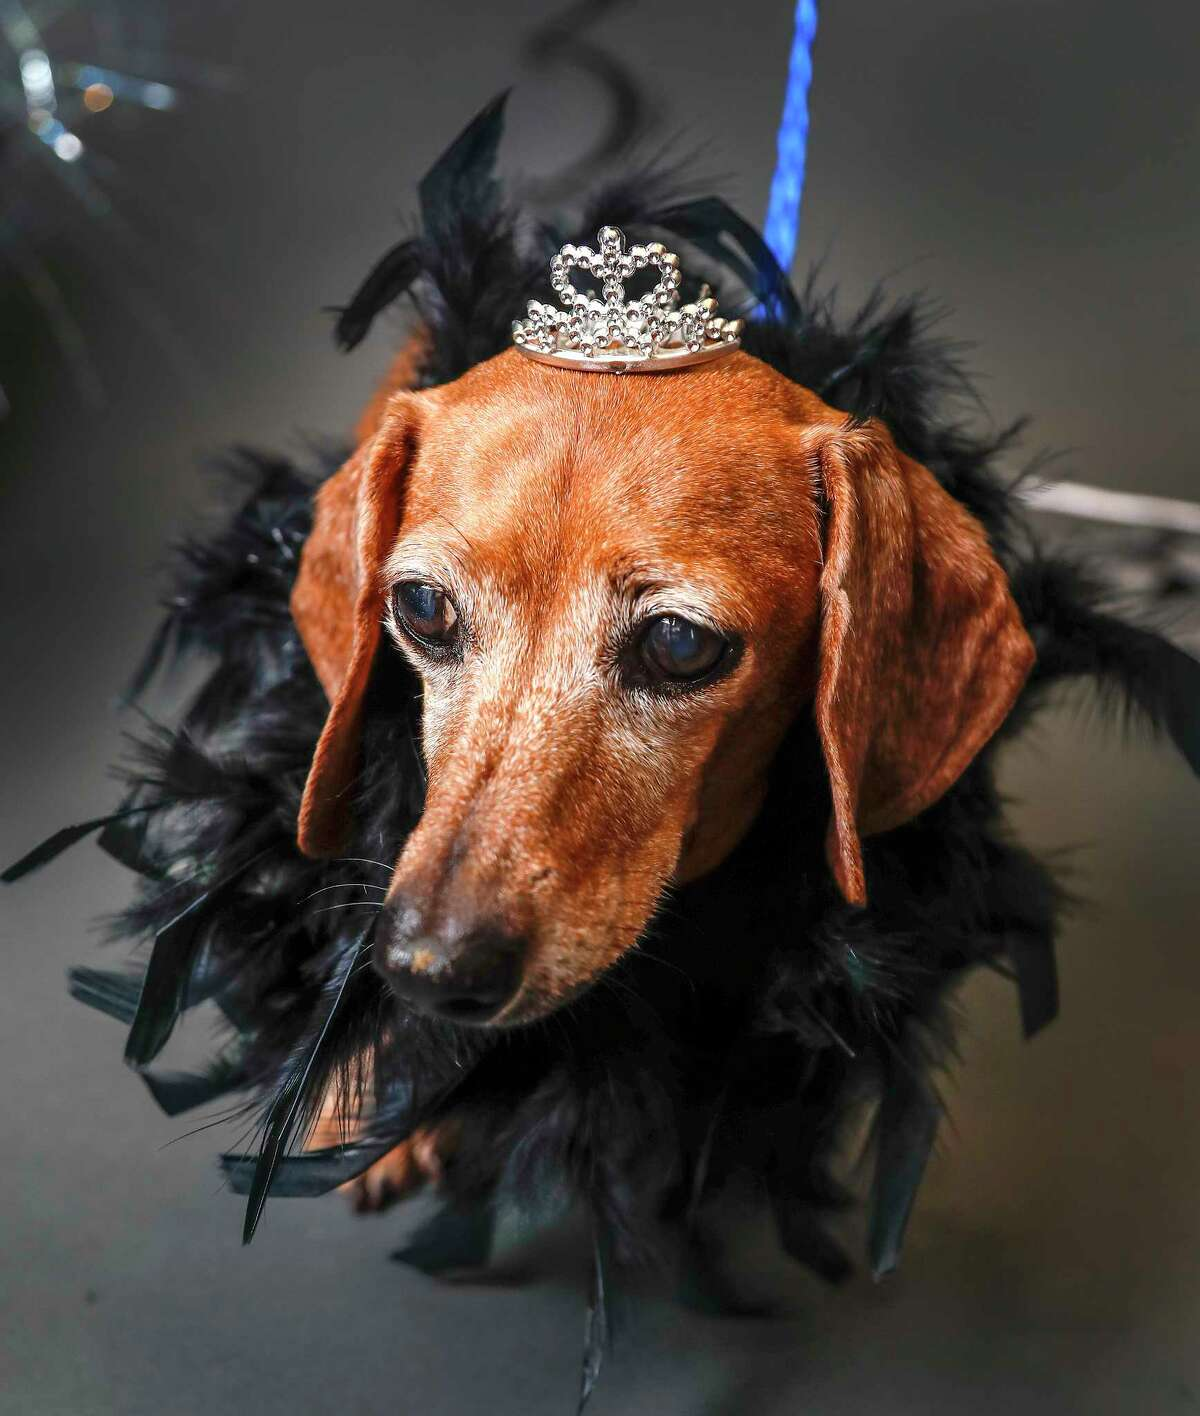 Crissy is a 10-year-old, female, Dachshund mix available for adoption at the BARC Houston Animal Shelter, in Houston. (Animal ID: A1628787) Crissy is a sweet senior girl, who would love to lounge on the couch with you.